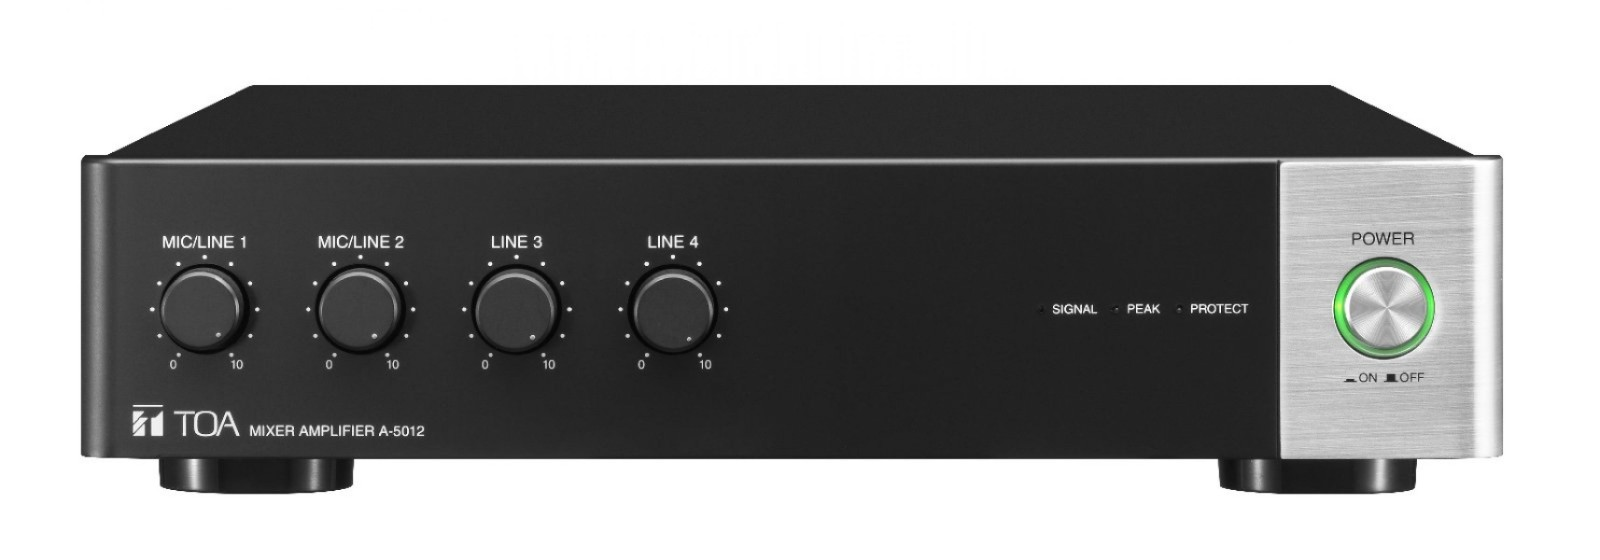 A-5012.Digital Mixer Amplifier